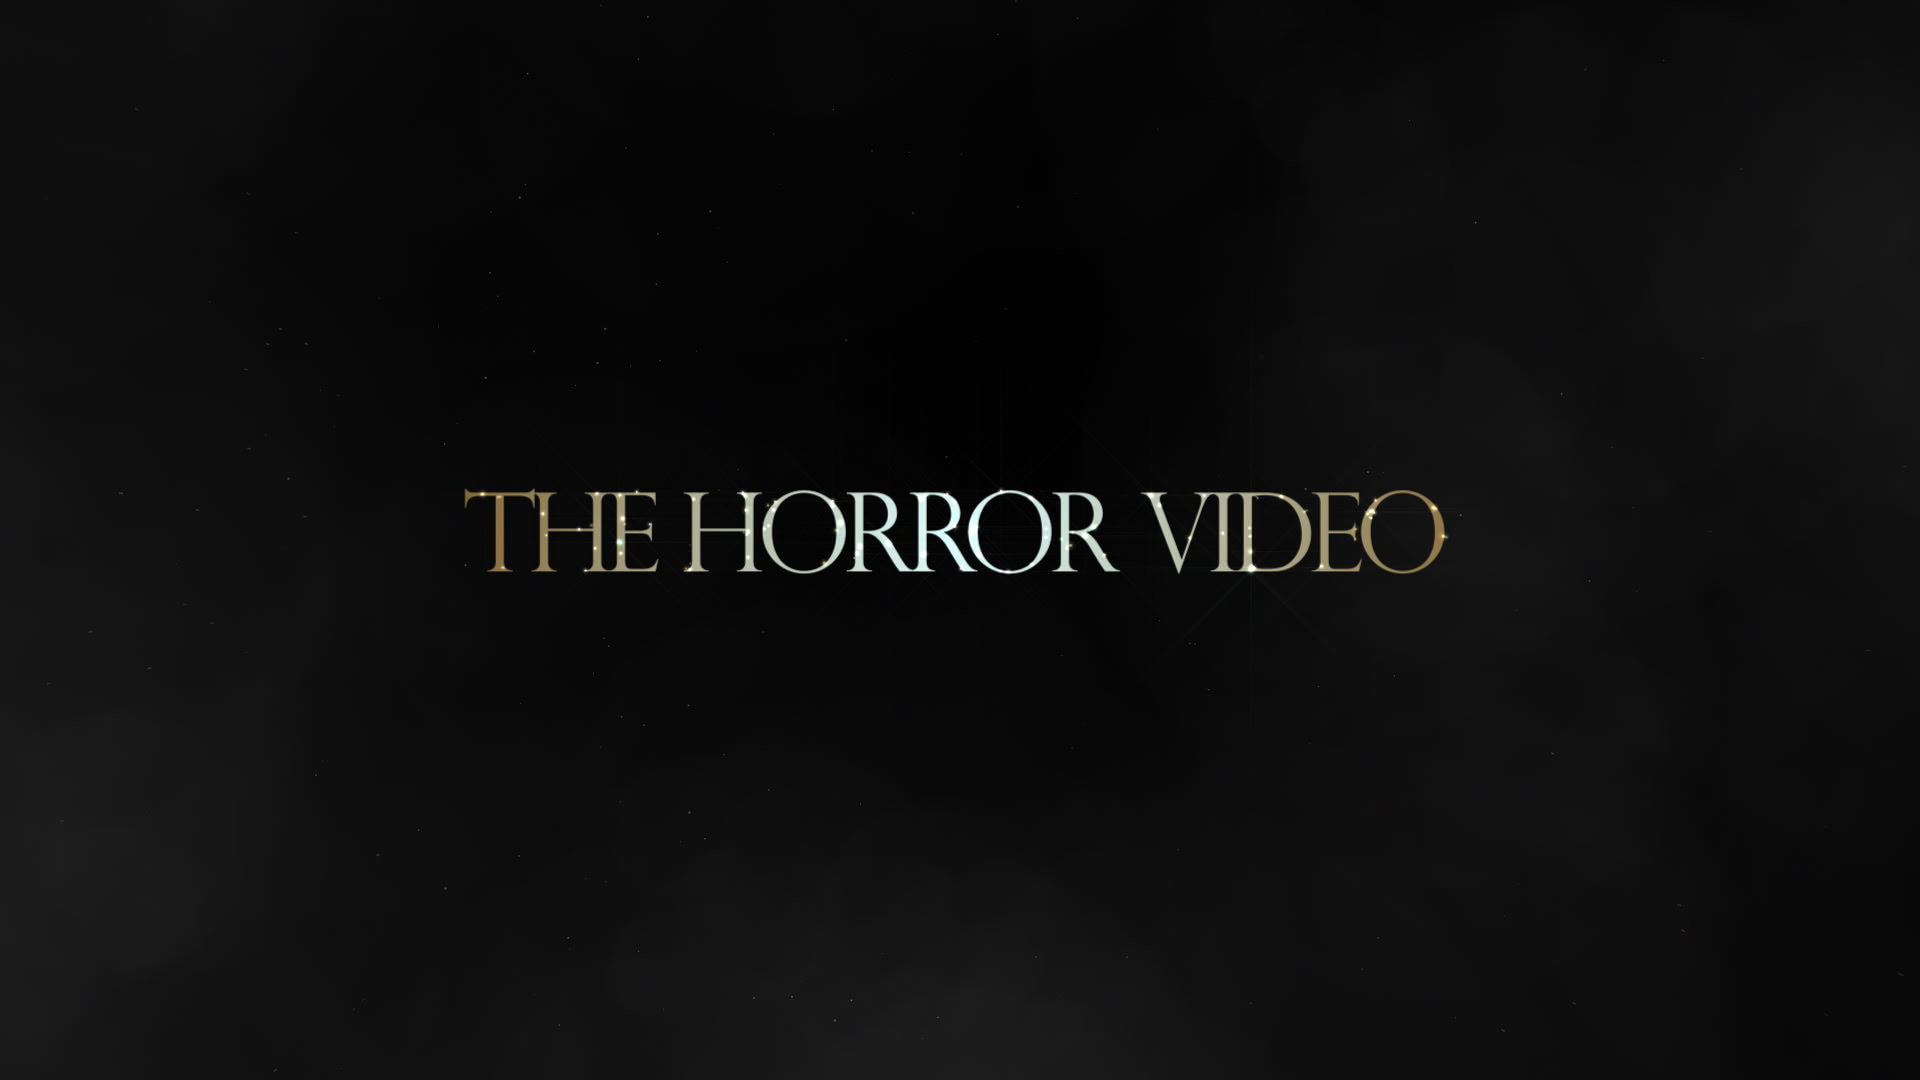 THE HORROR VIDEO ep.1